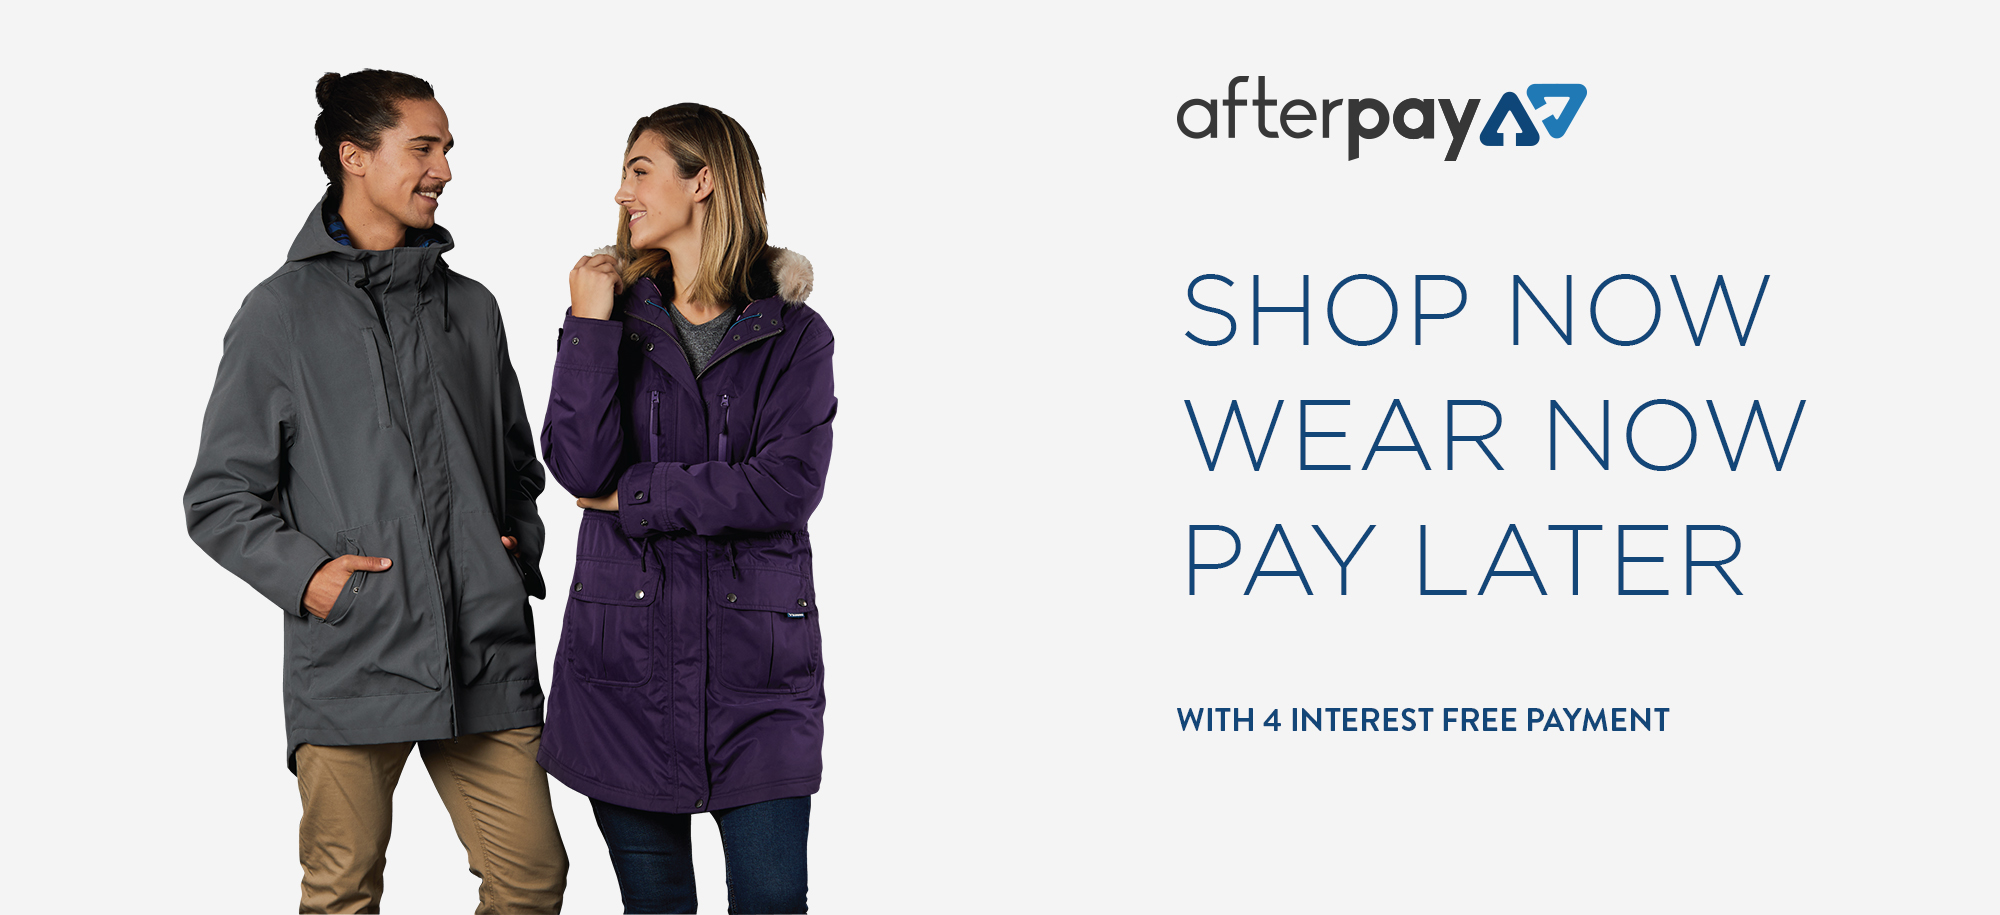 Afterpay page banner